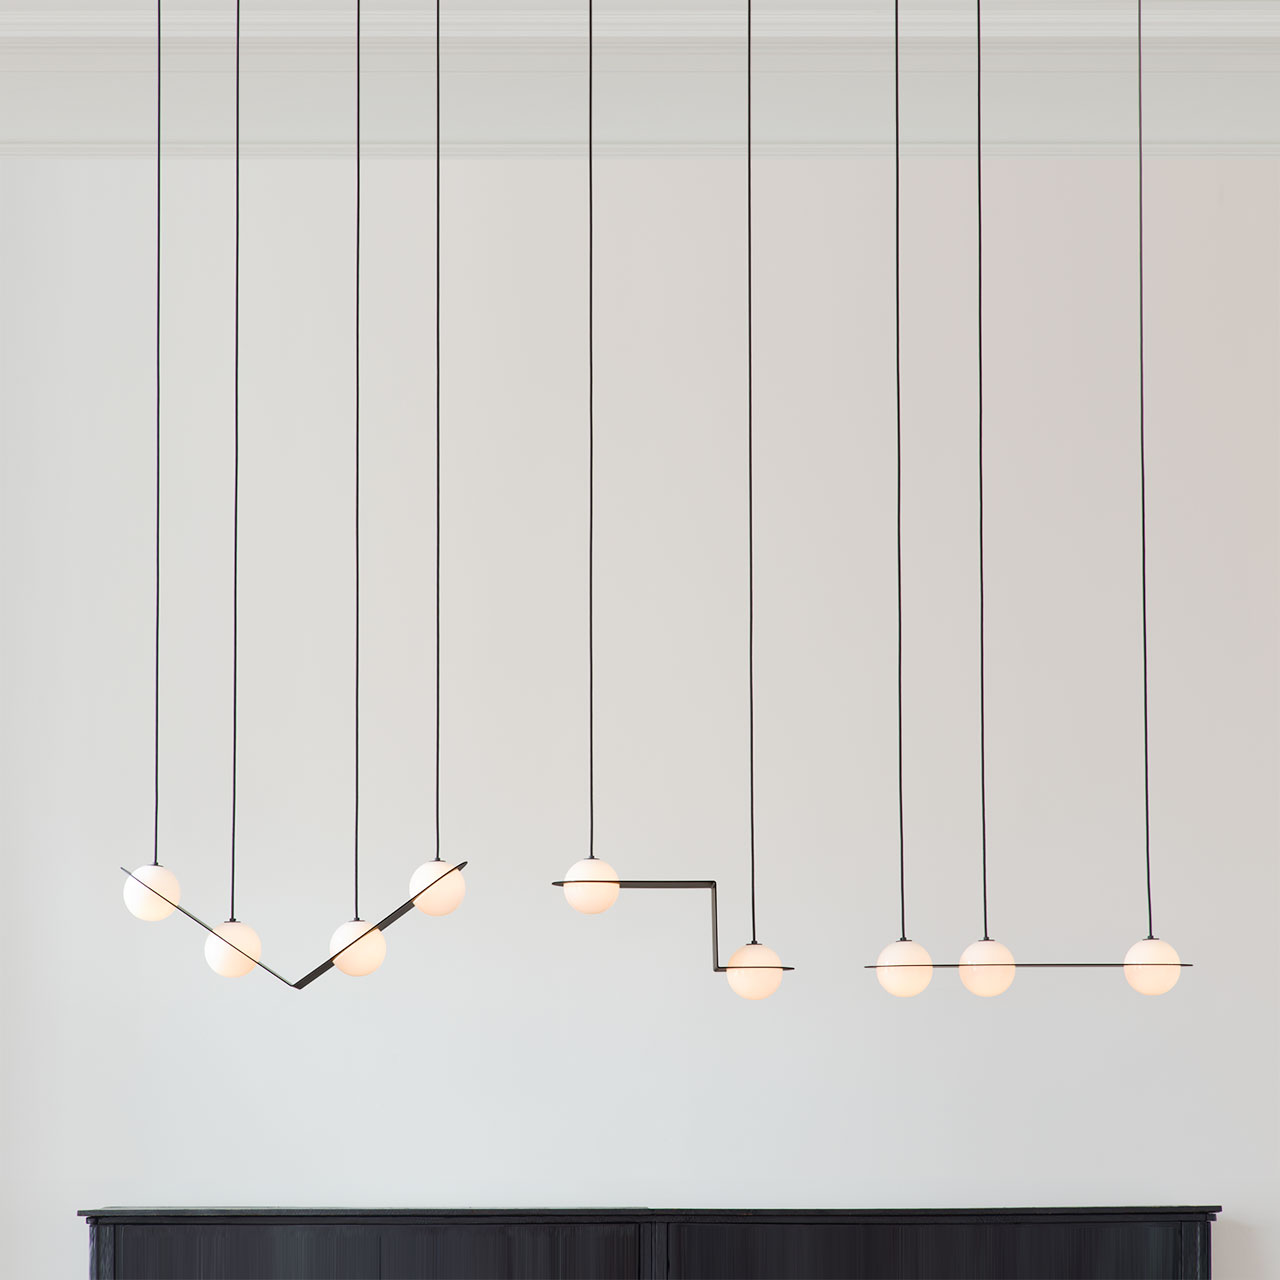 Laurent lighting collection by Lambert & Fils.